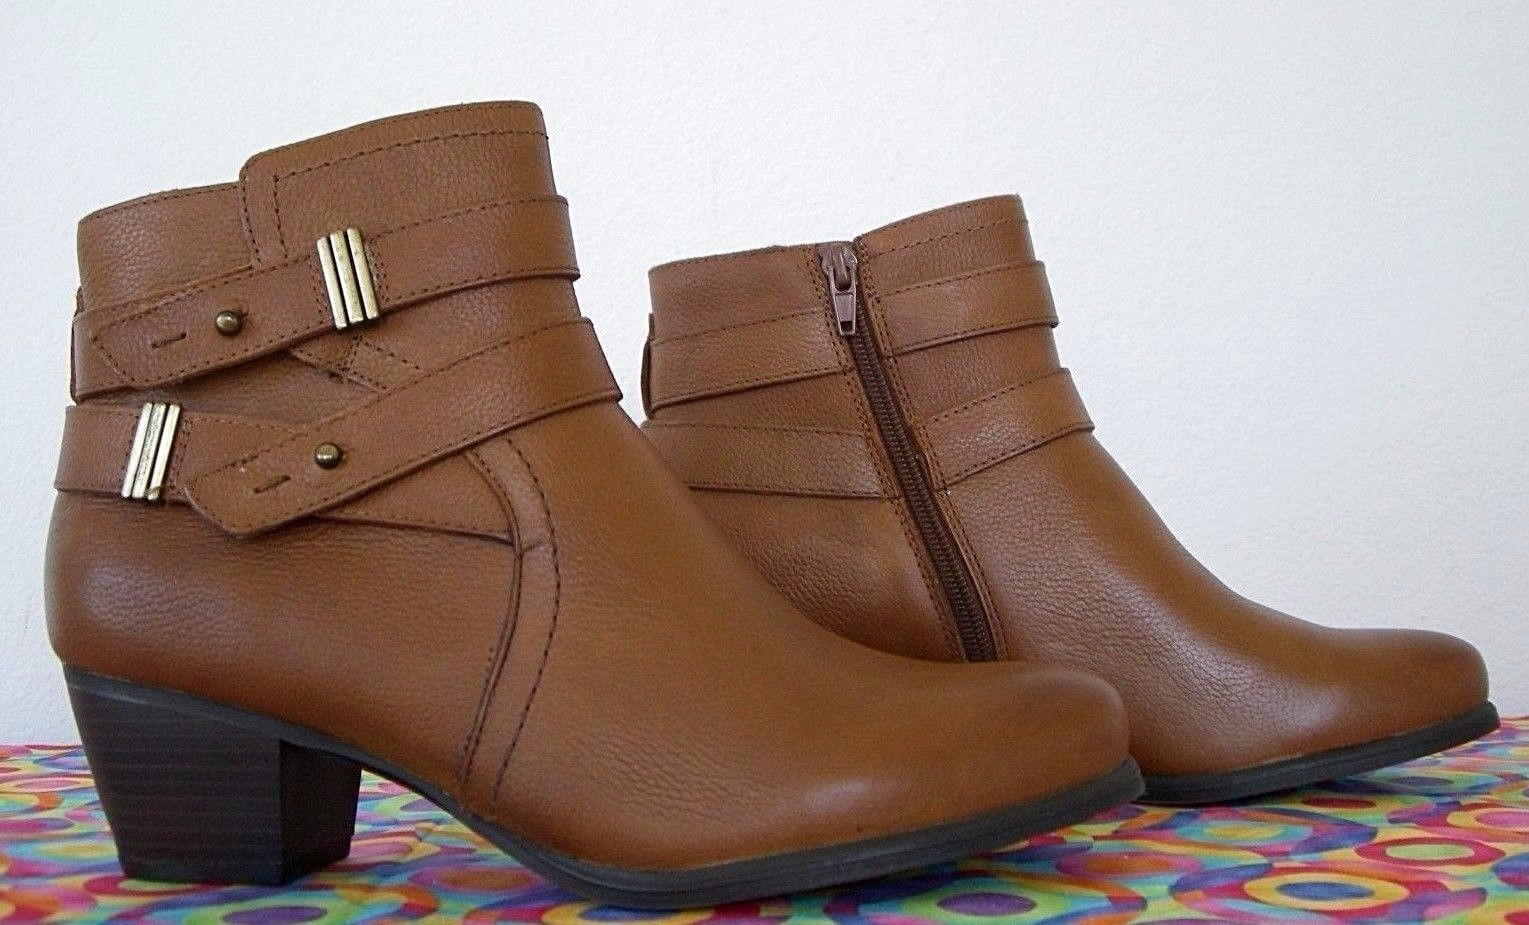 NEW*  Naturalizer  Glazed Brown  Pelle  Belted  Ankle Boot   7 M   ( 139)